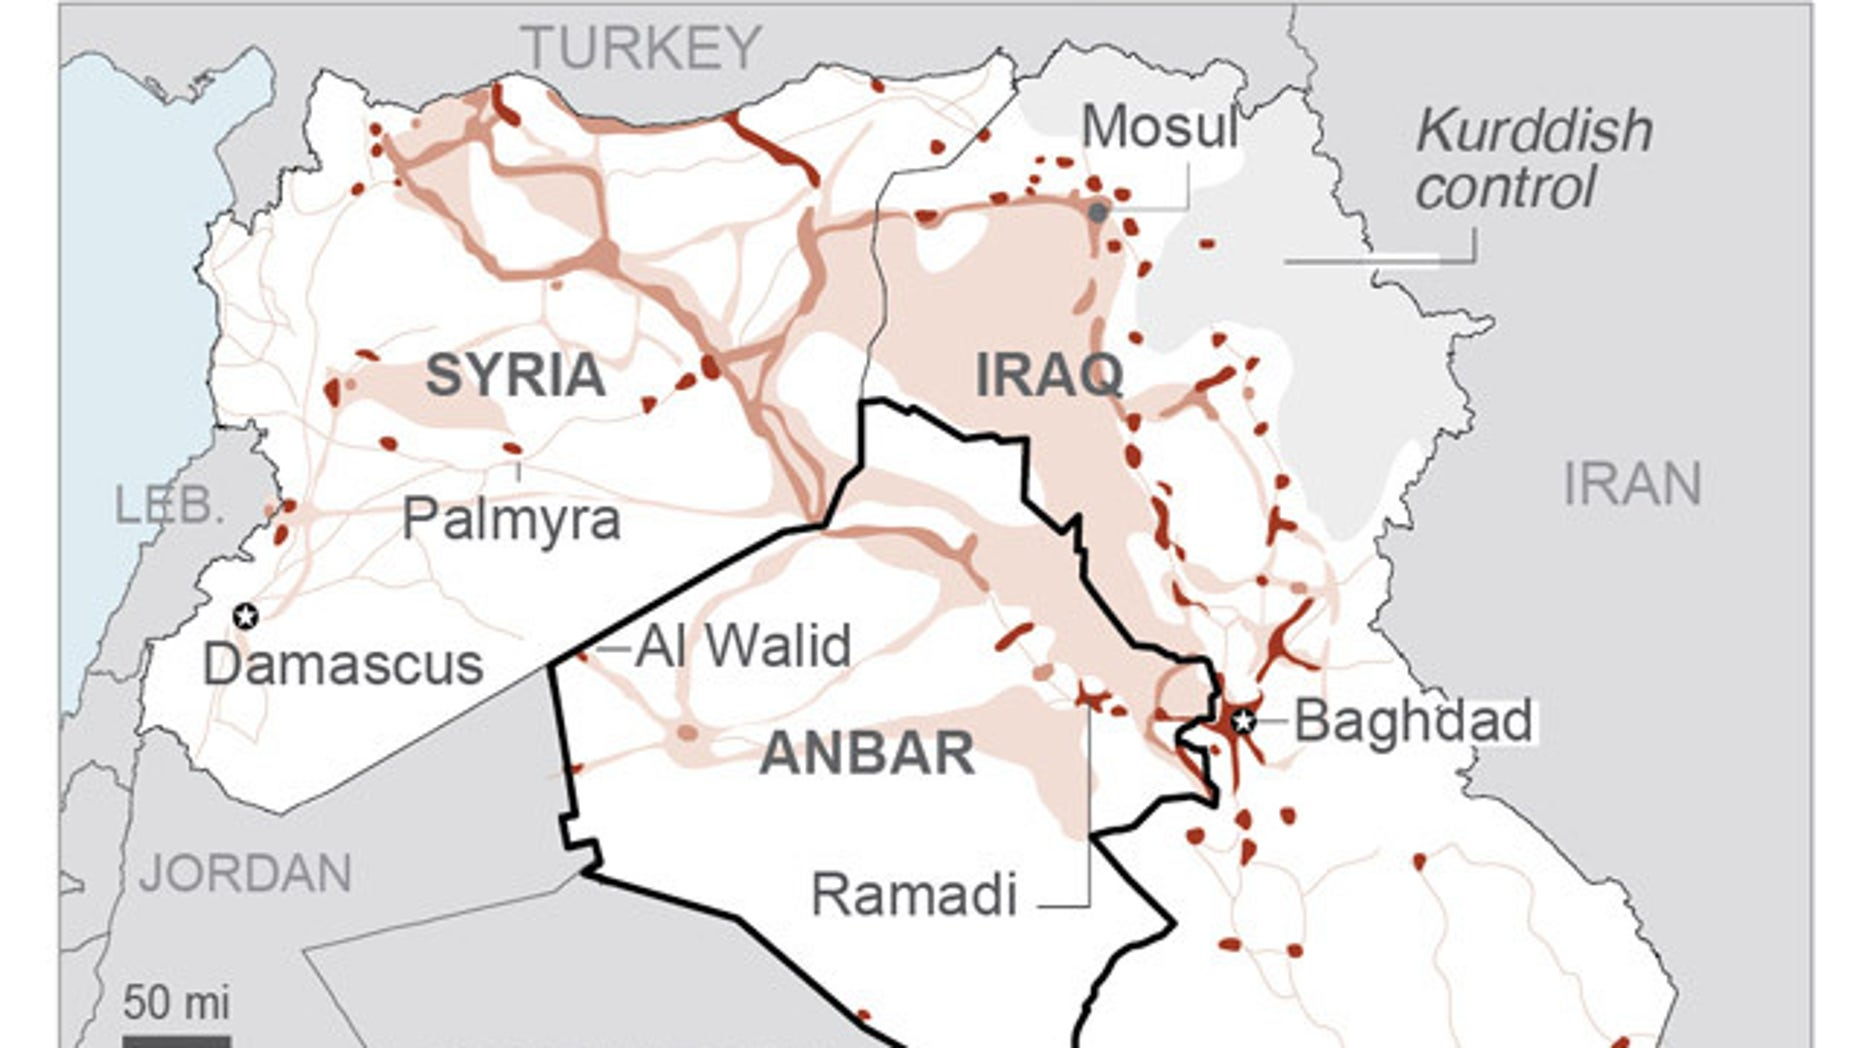 A map showing the location of ISIS' control.